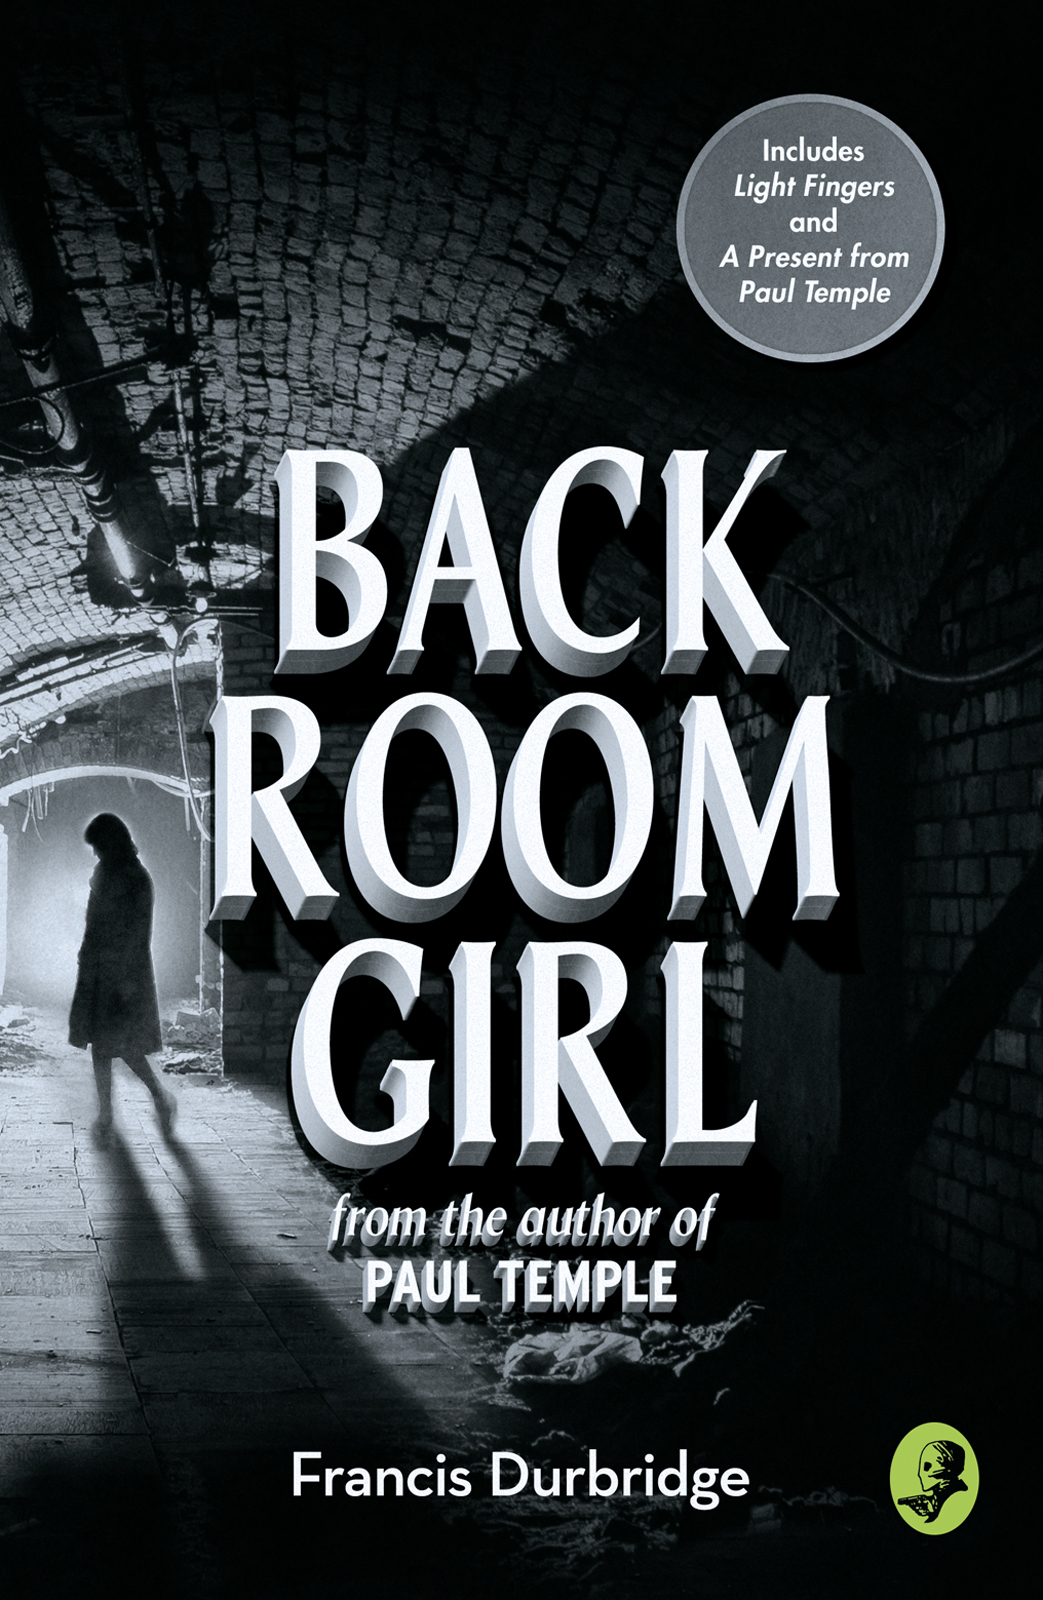 Francis Durbridge Back Room Girl: By the author of Paul Temple francis durbridge paul temple 3 book collection send for paul temple paul temple and the front page men news of paul temple